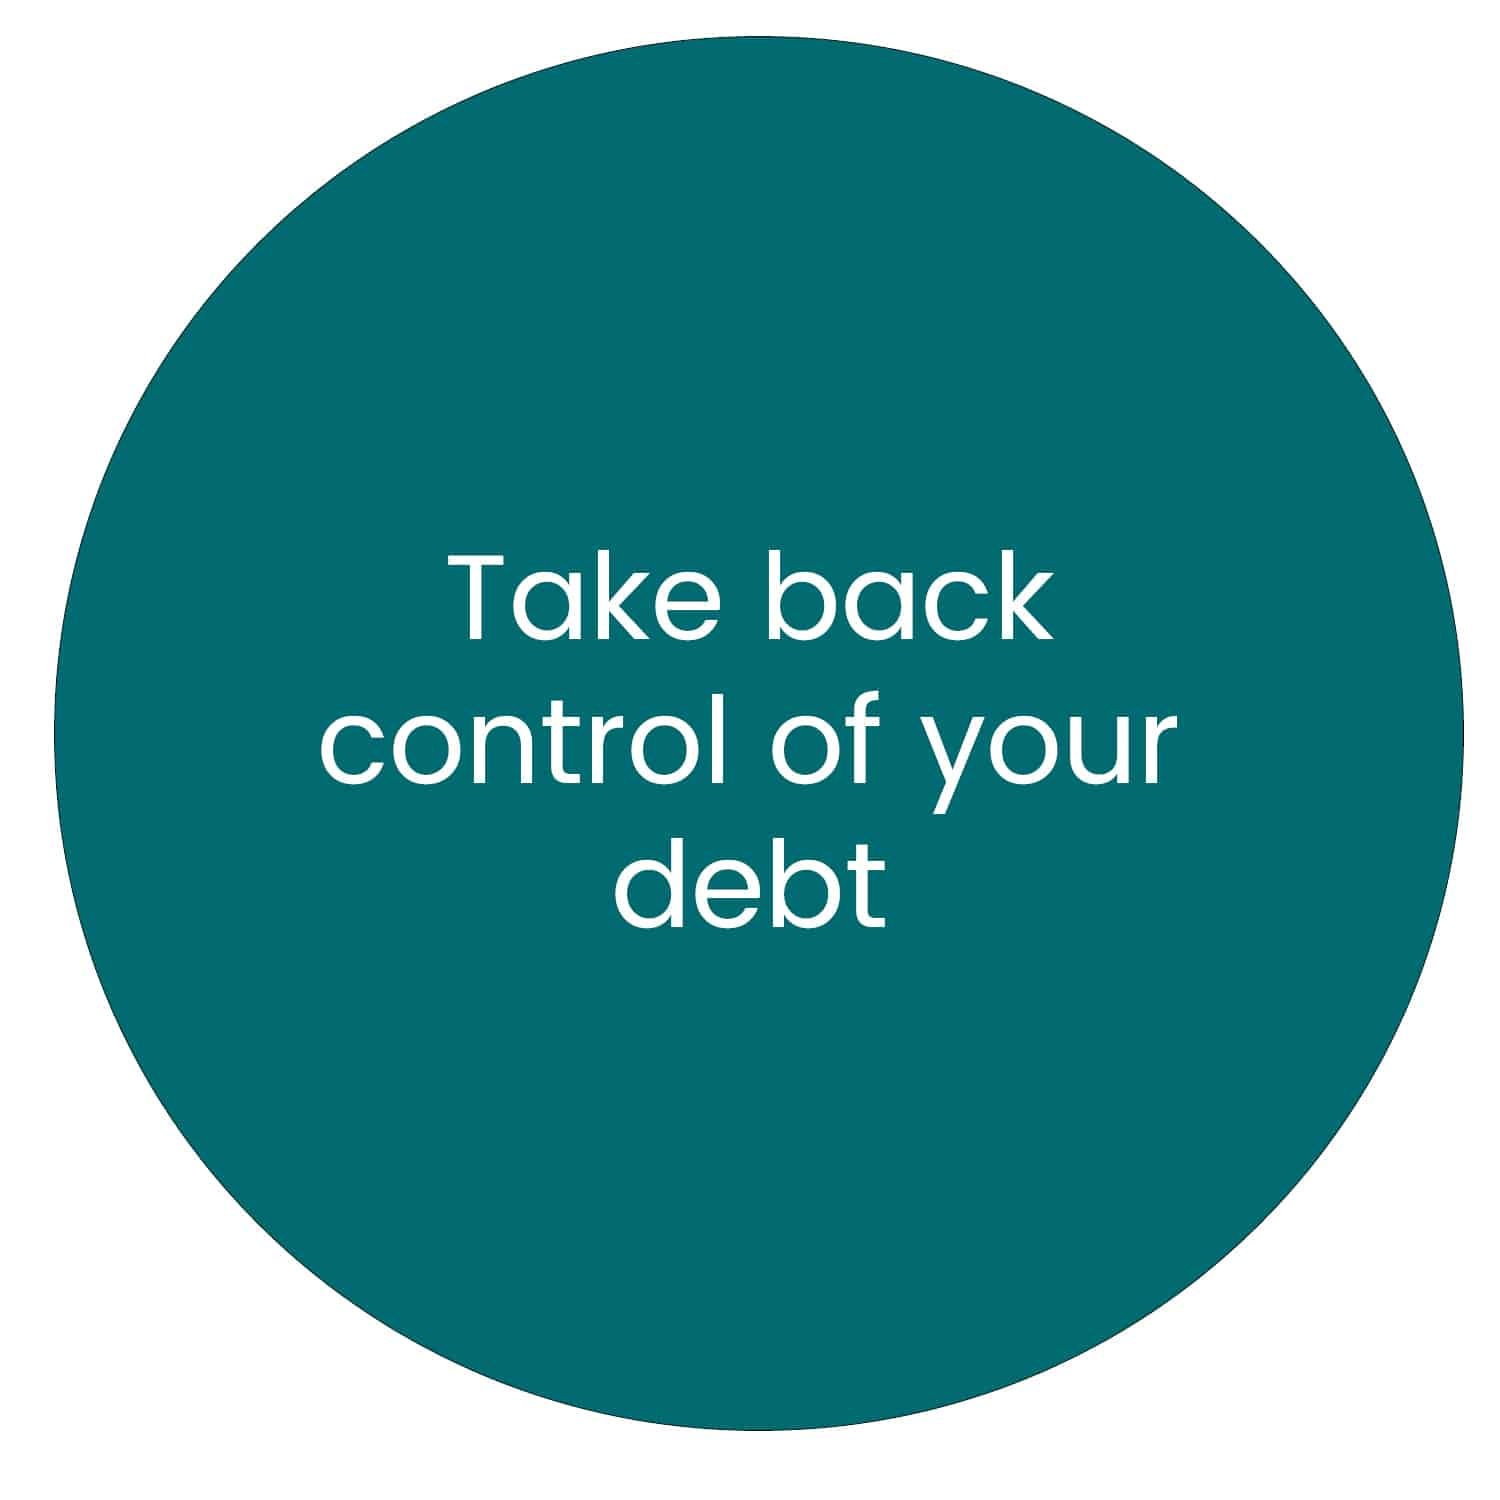 Take back control of your debt text in green circle